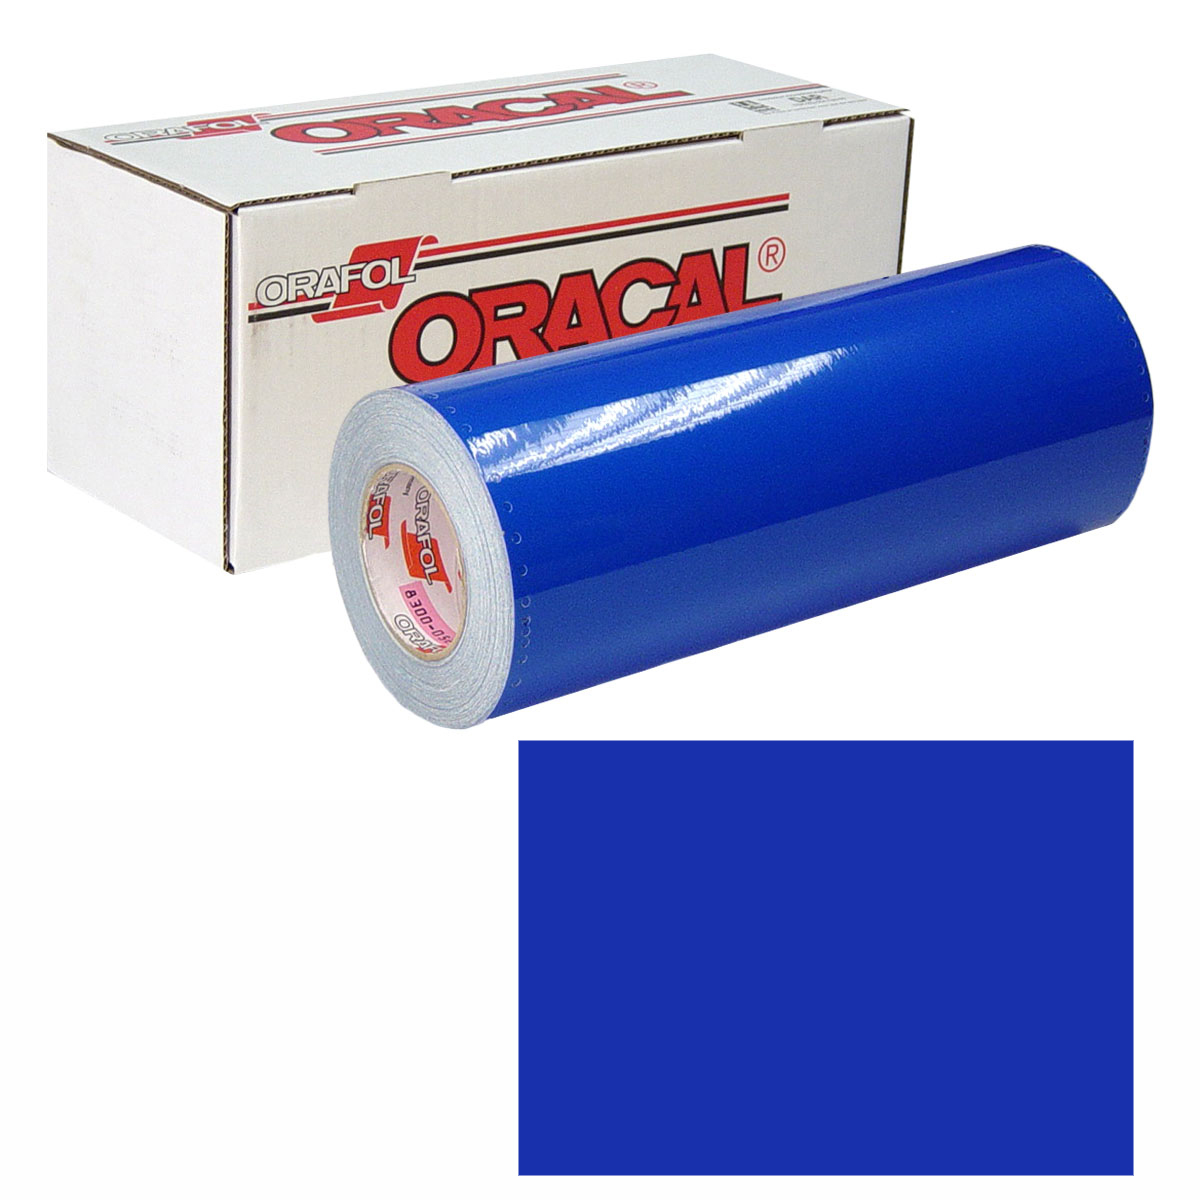 ORACAL 631 Unp 24in X 10yd 086 Brilliant Blue